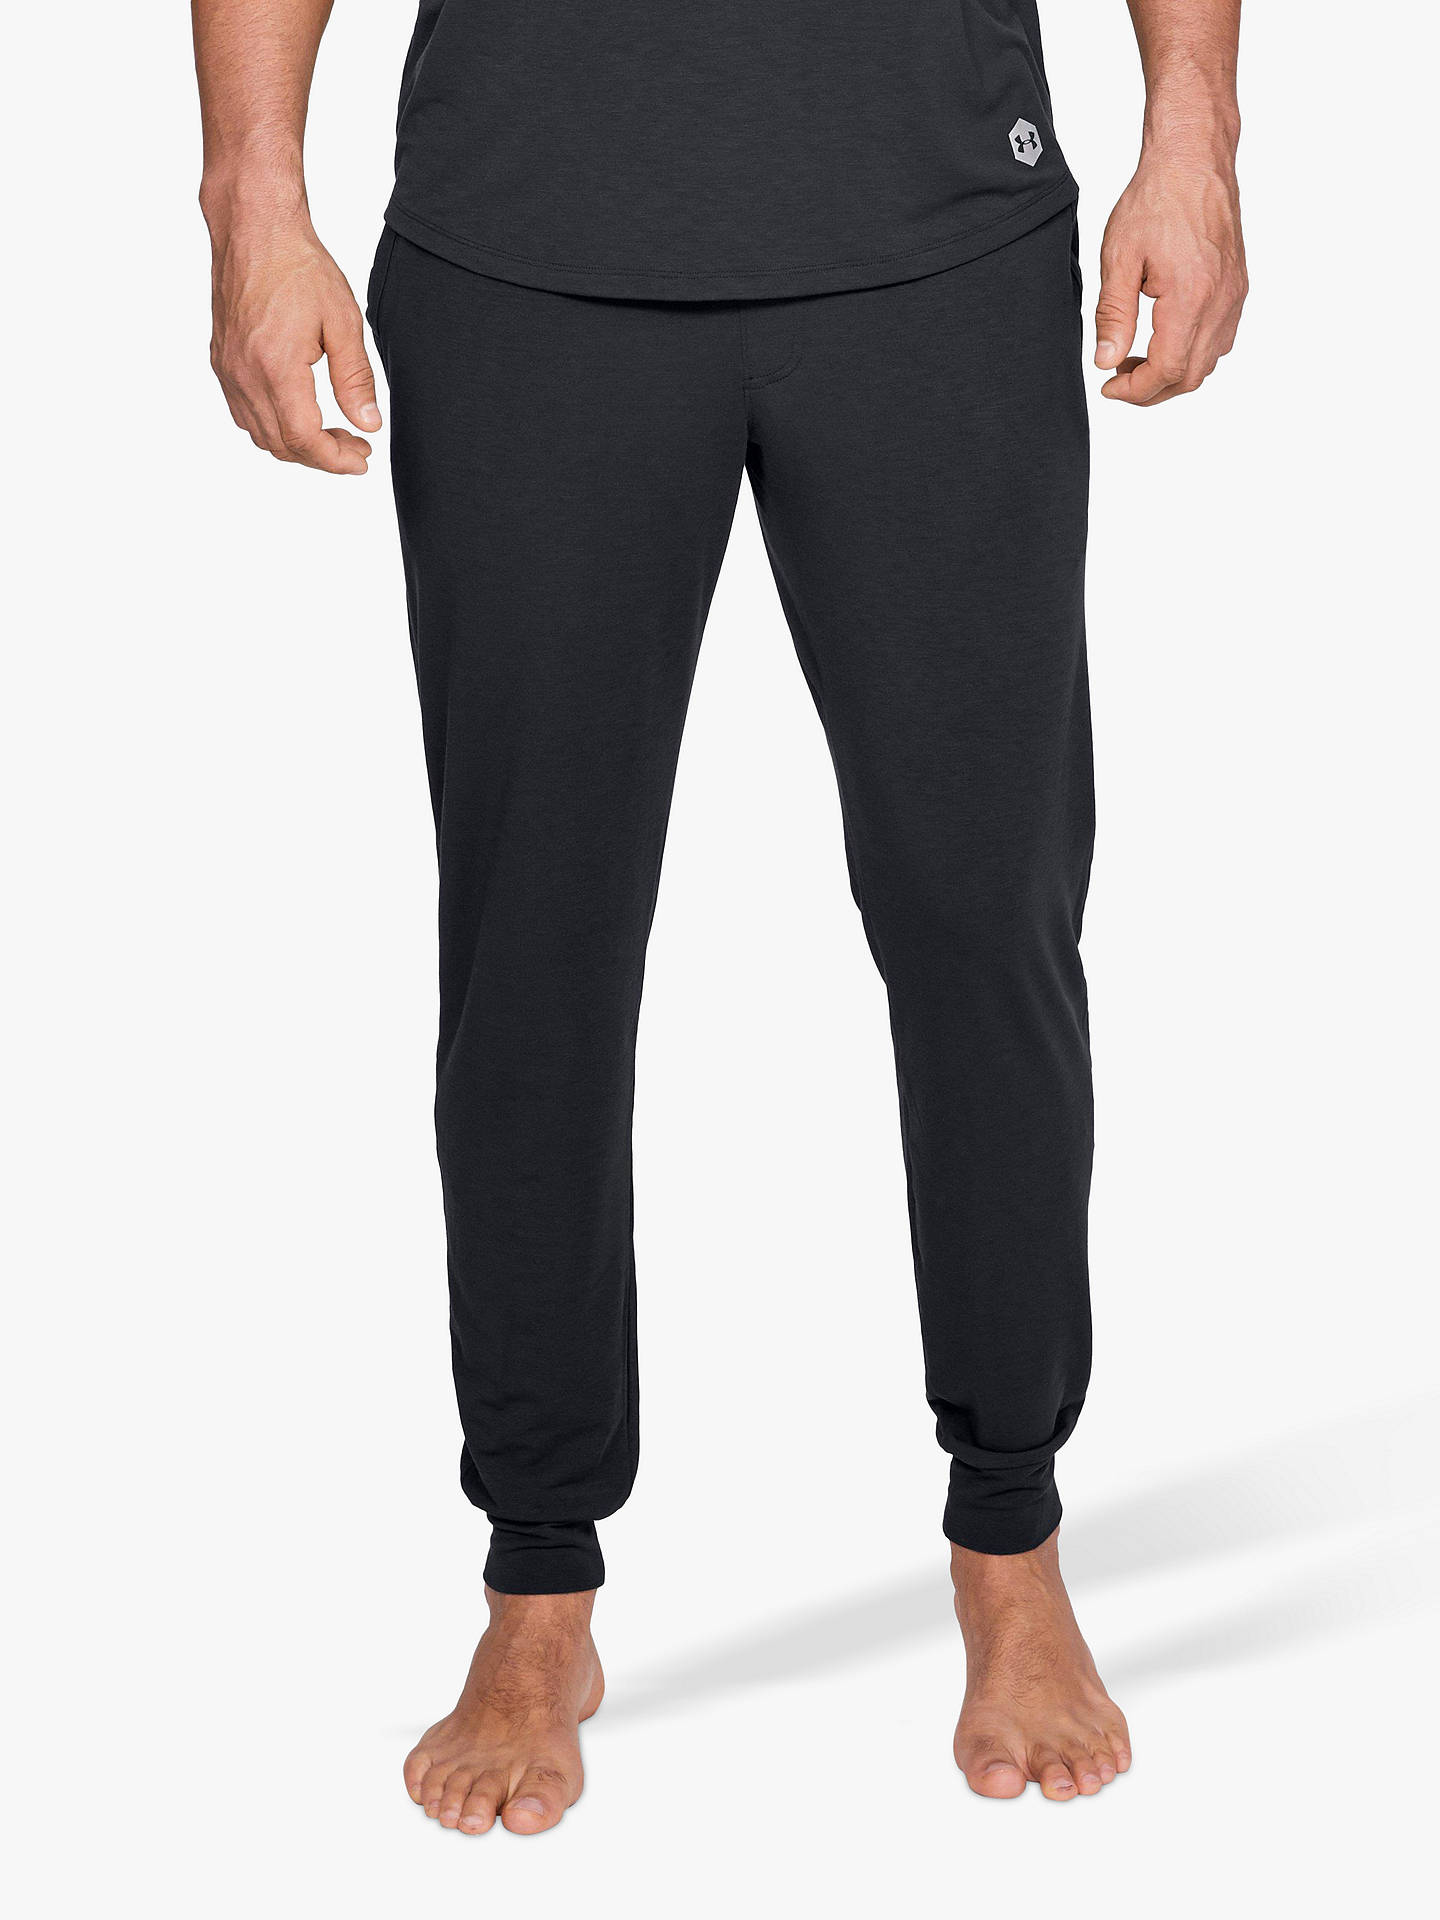 45d99b8dfd Under Armour Athlete Recovery Sleepwear Joggers, Black